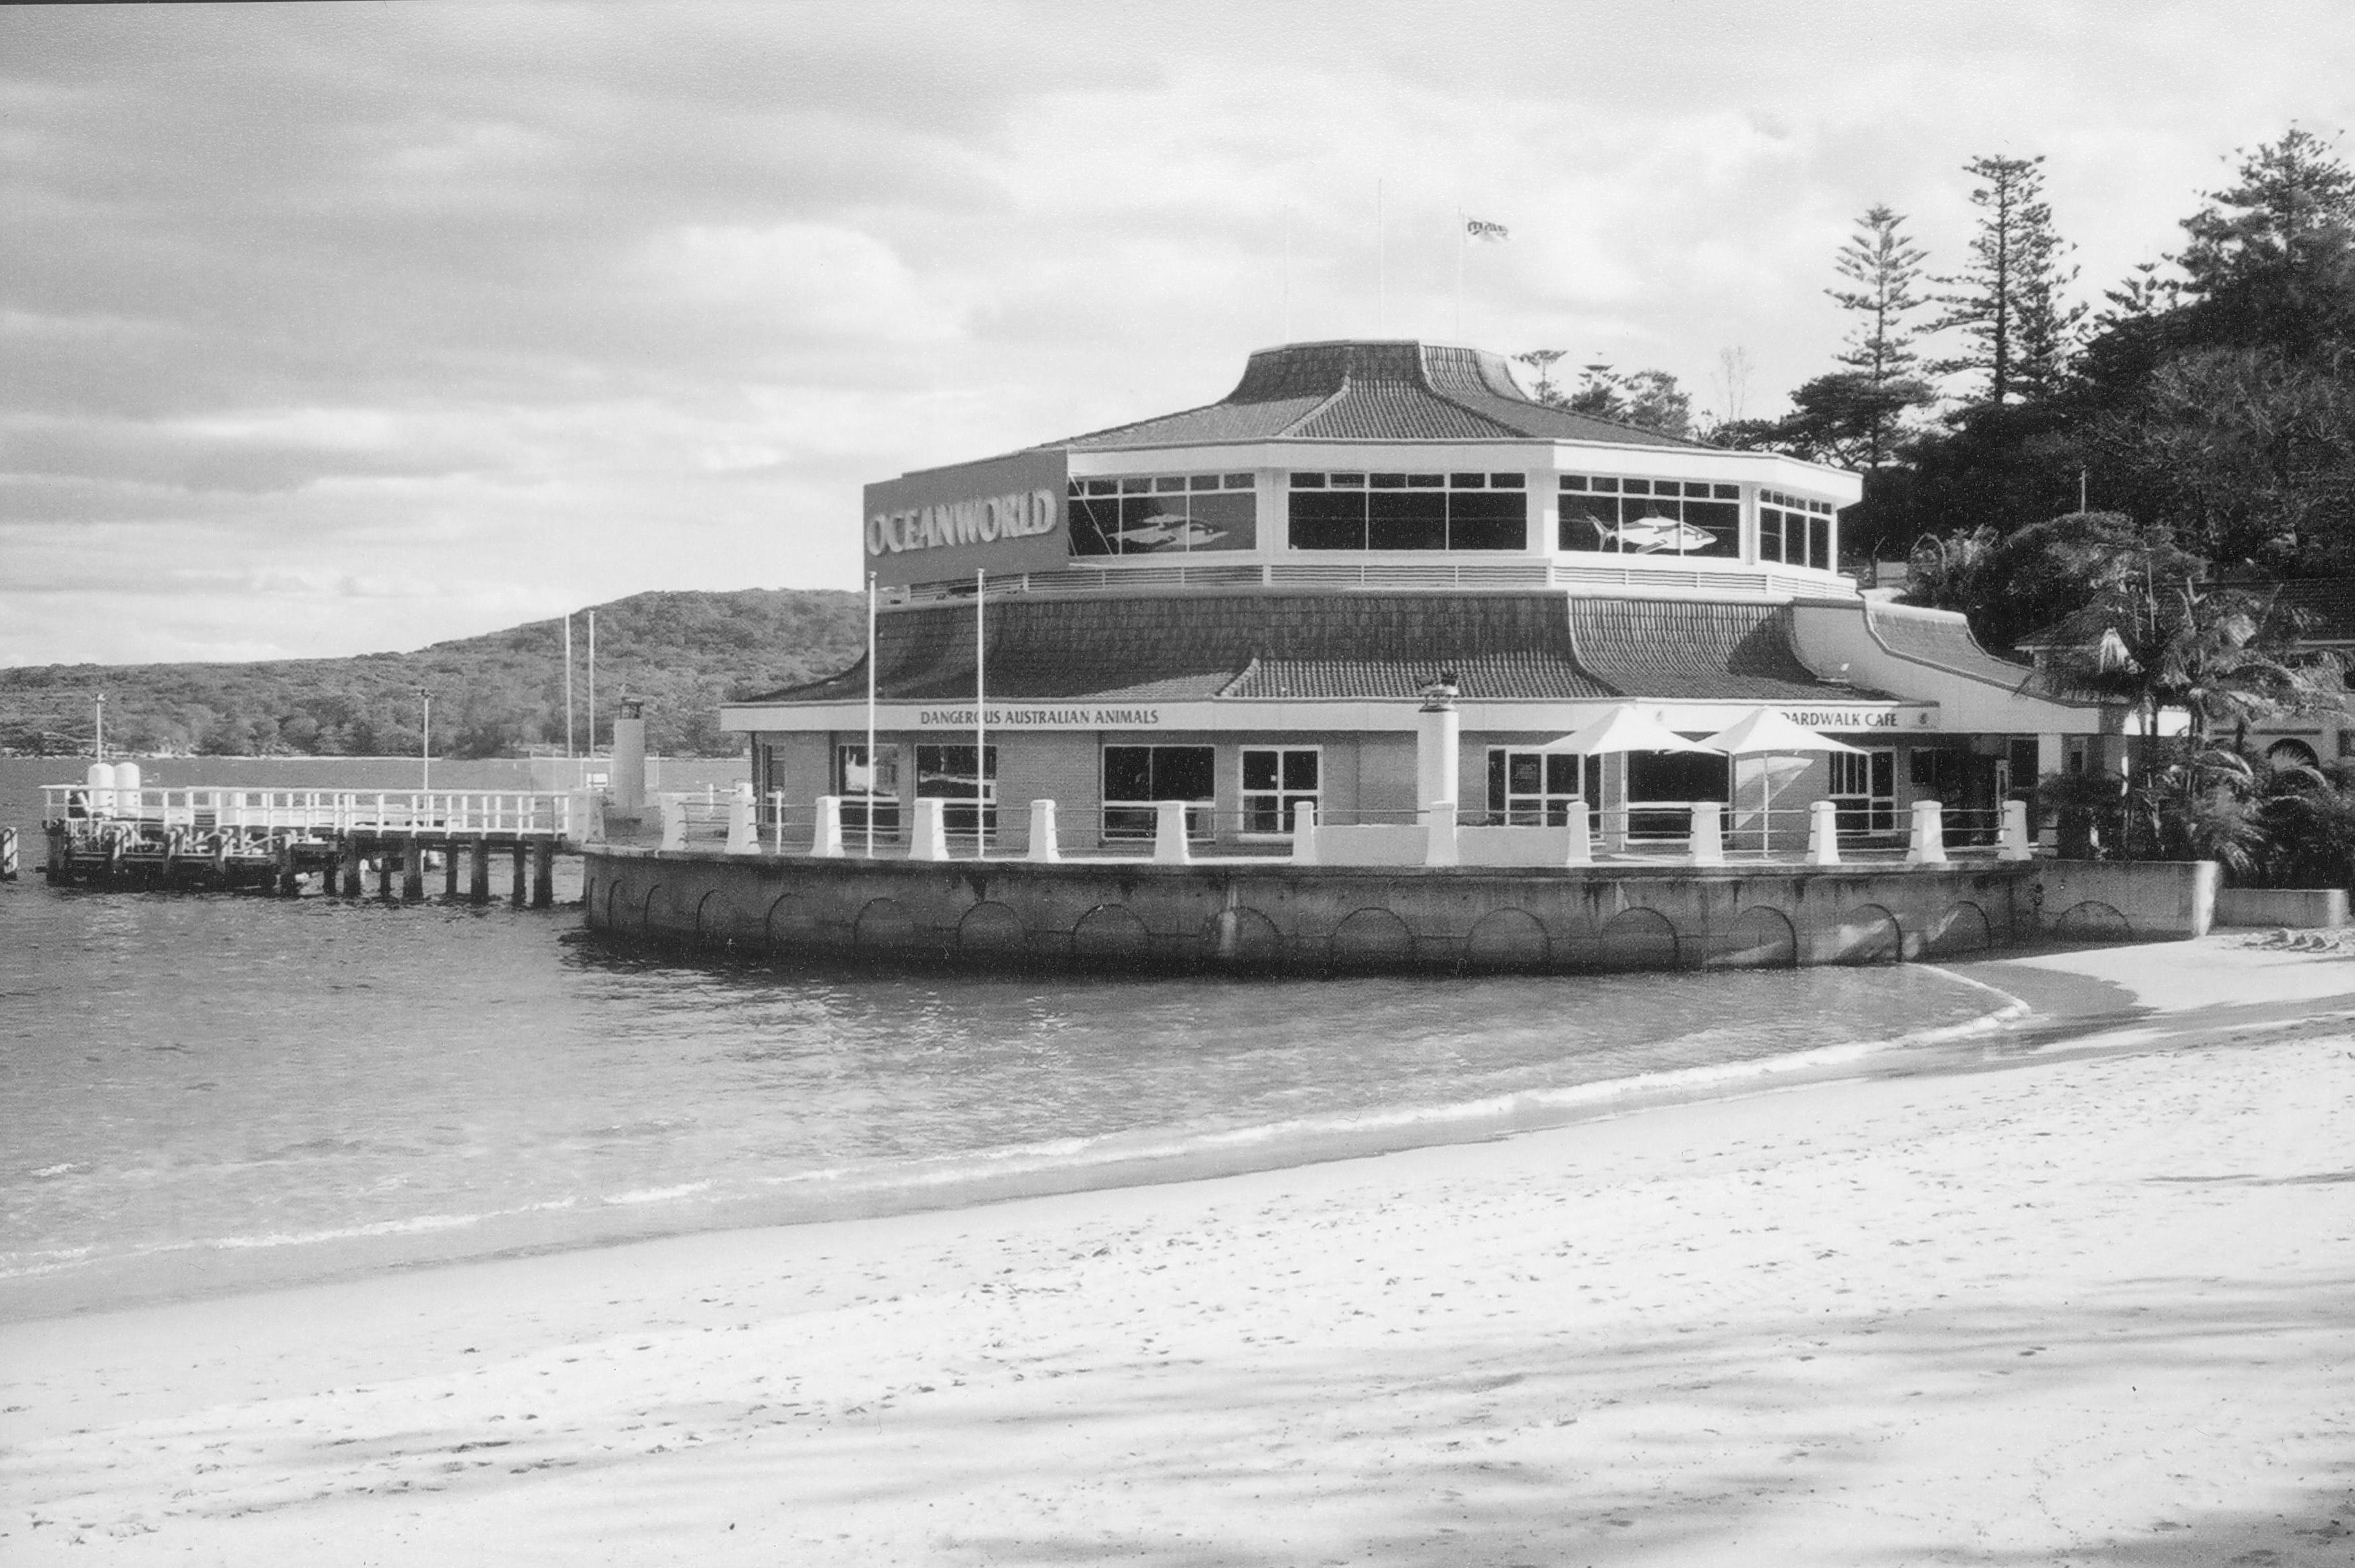 It went by many names - Oceanarium, Marineland, Oceanworld, Sea Life - but it remained an iconic building within the famous Sydney beachside suburb of Manly.